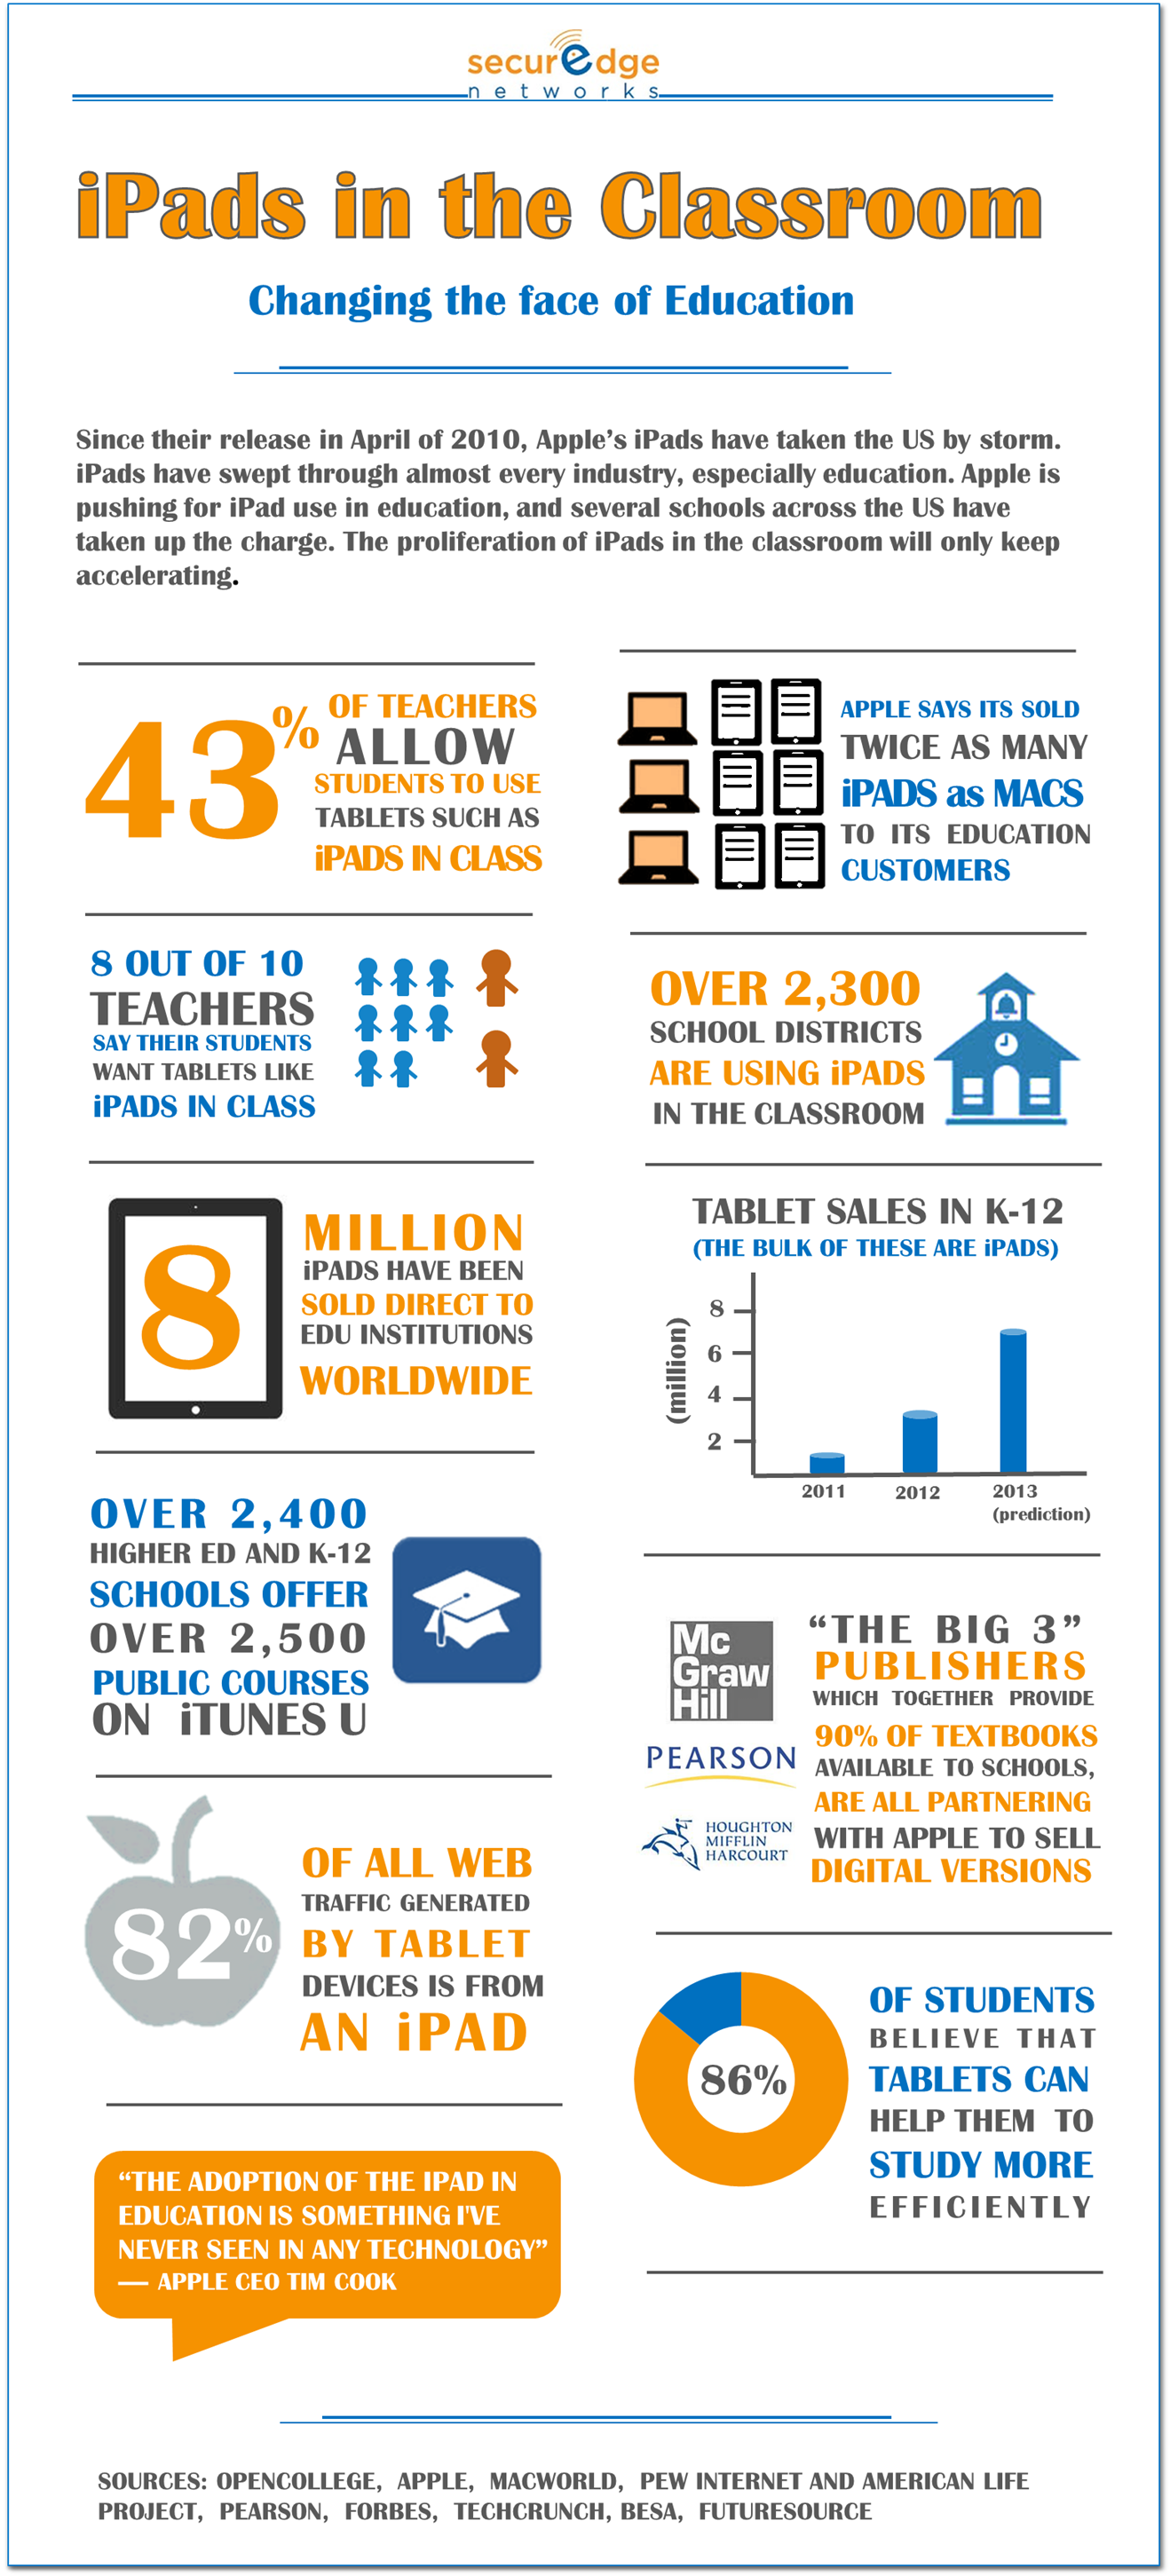 iPads in the Classroom: Changing the Face of Education Infographic